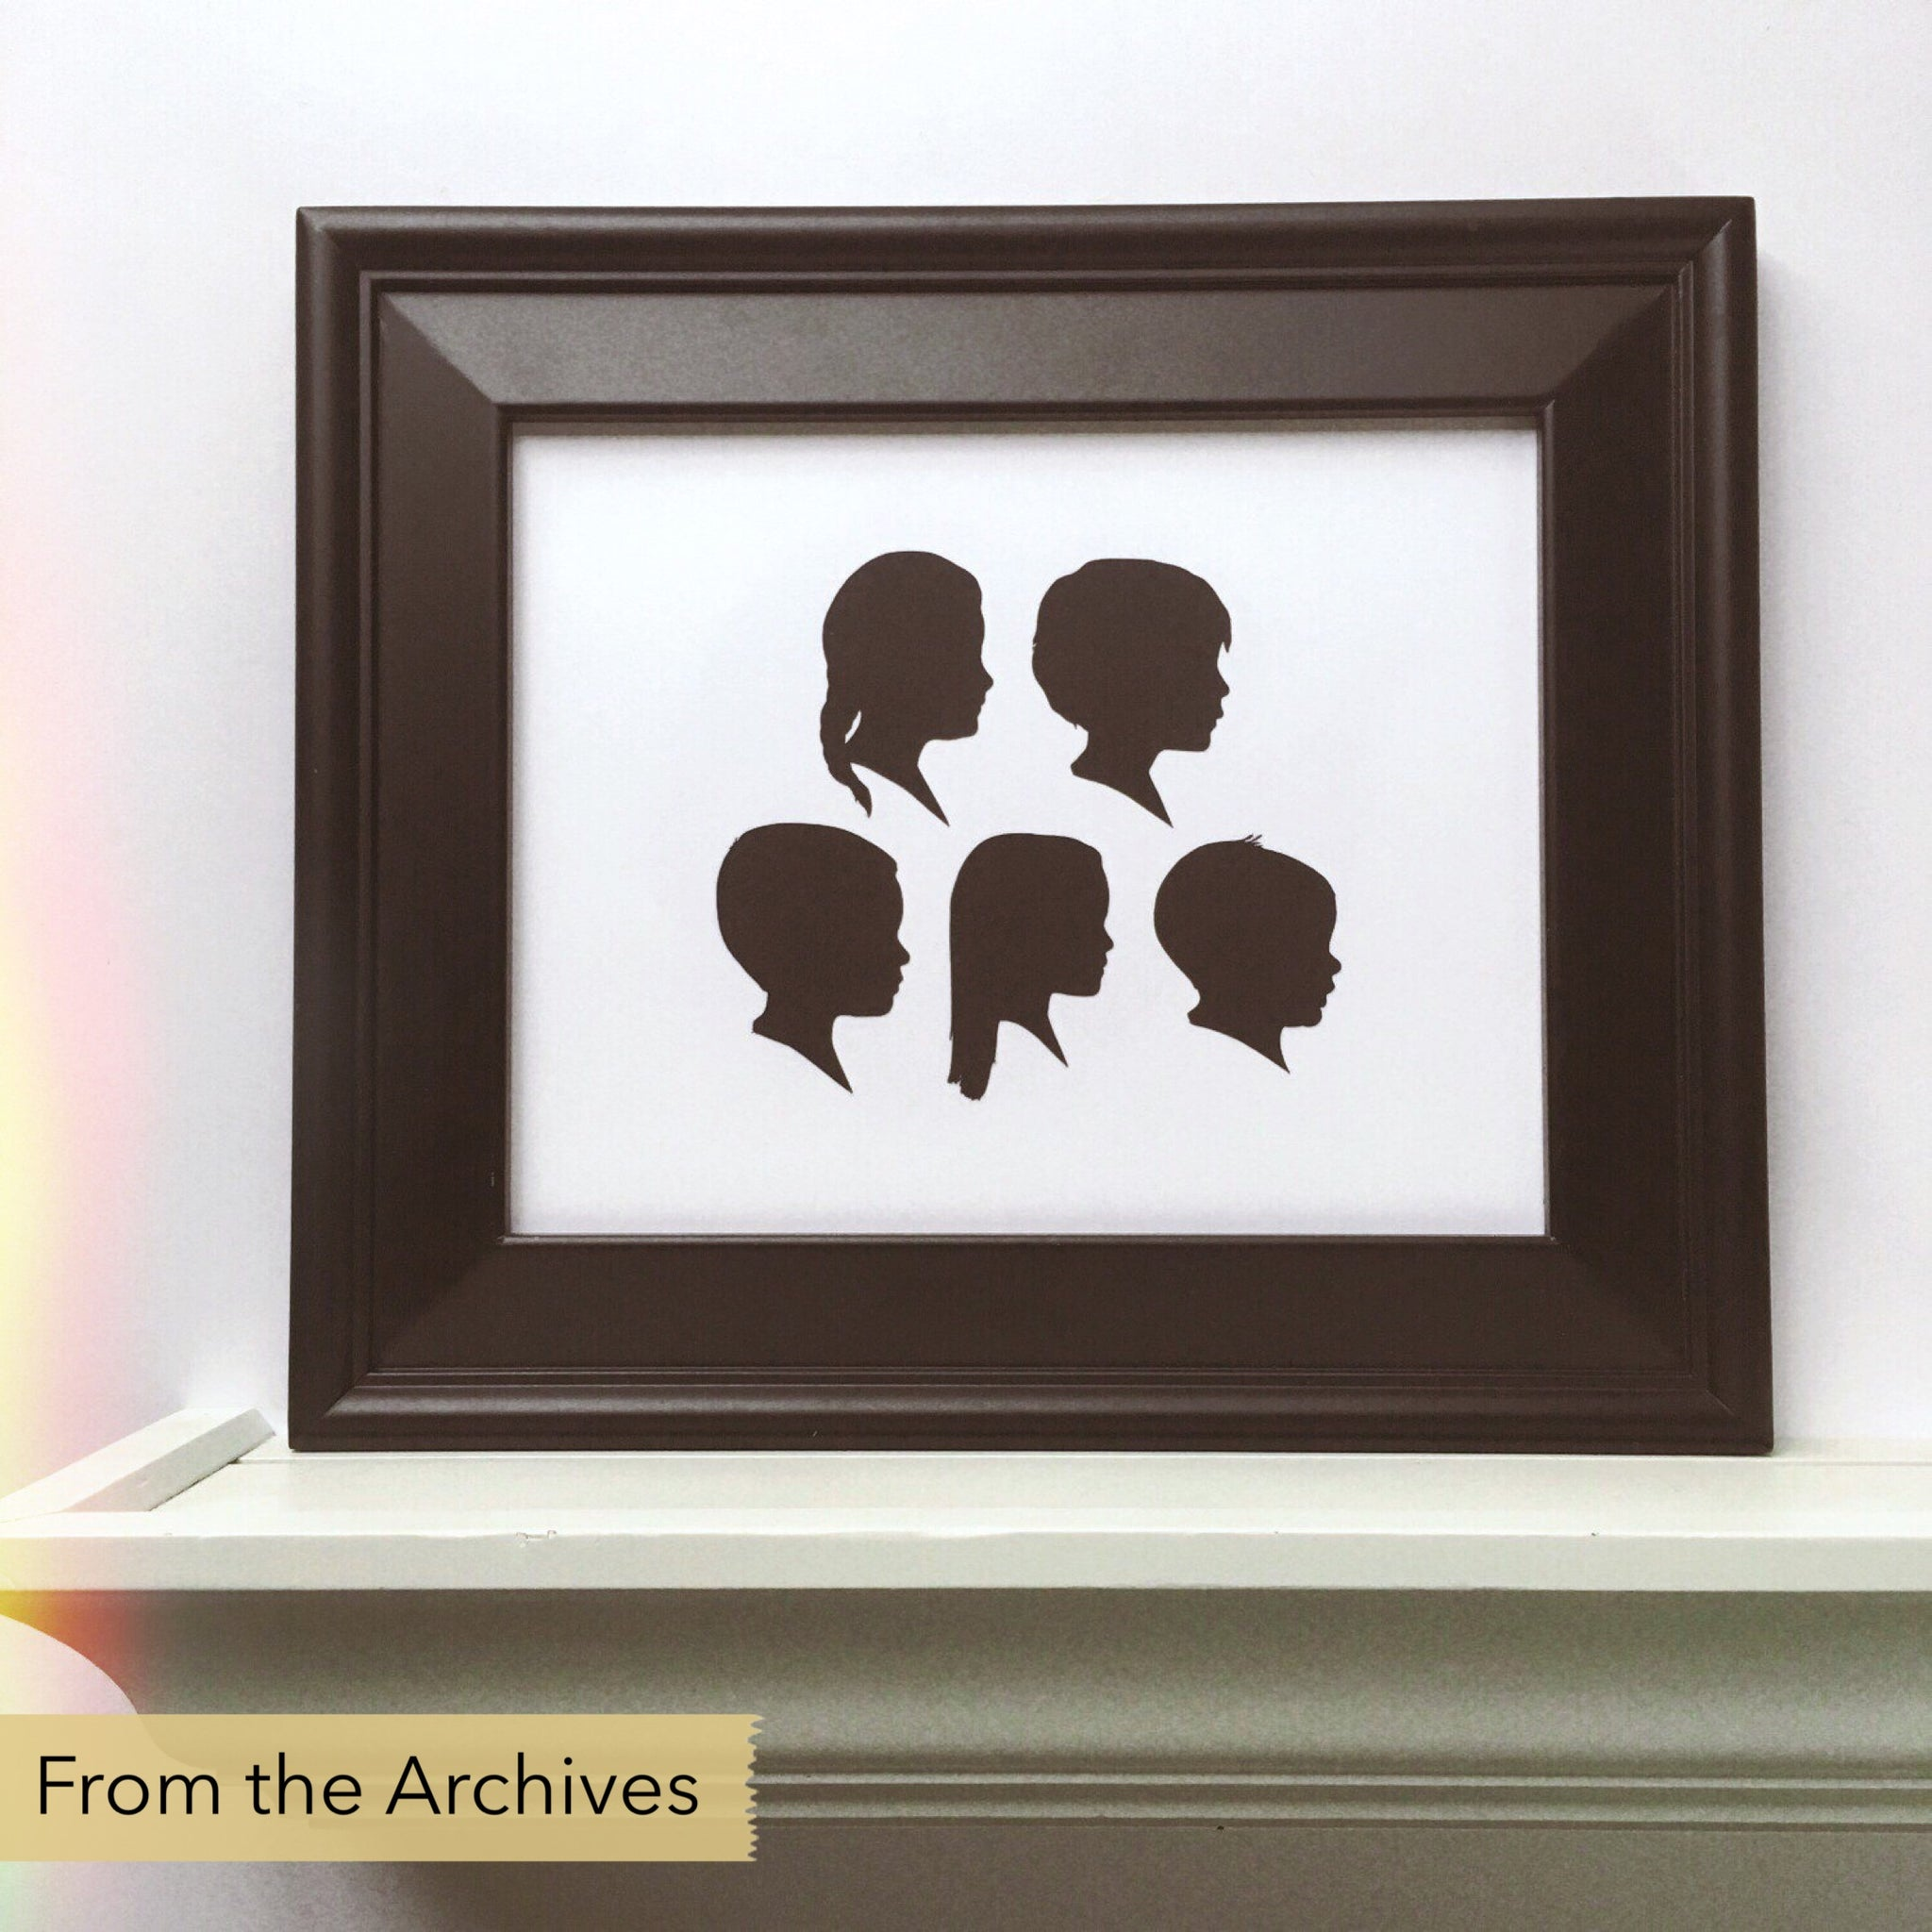 "FROM THE ARCHIVES 8x10"" with Five Silhouette Paper-Cuts"